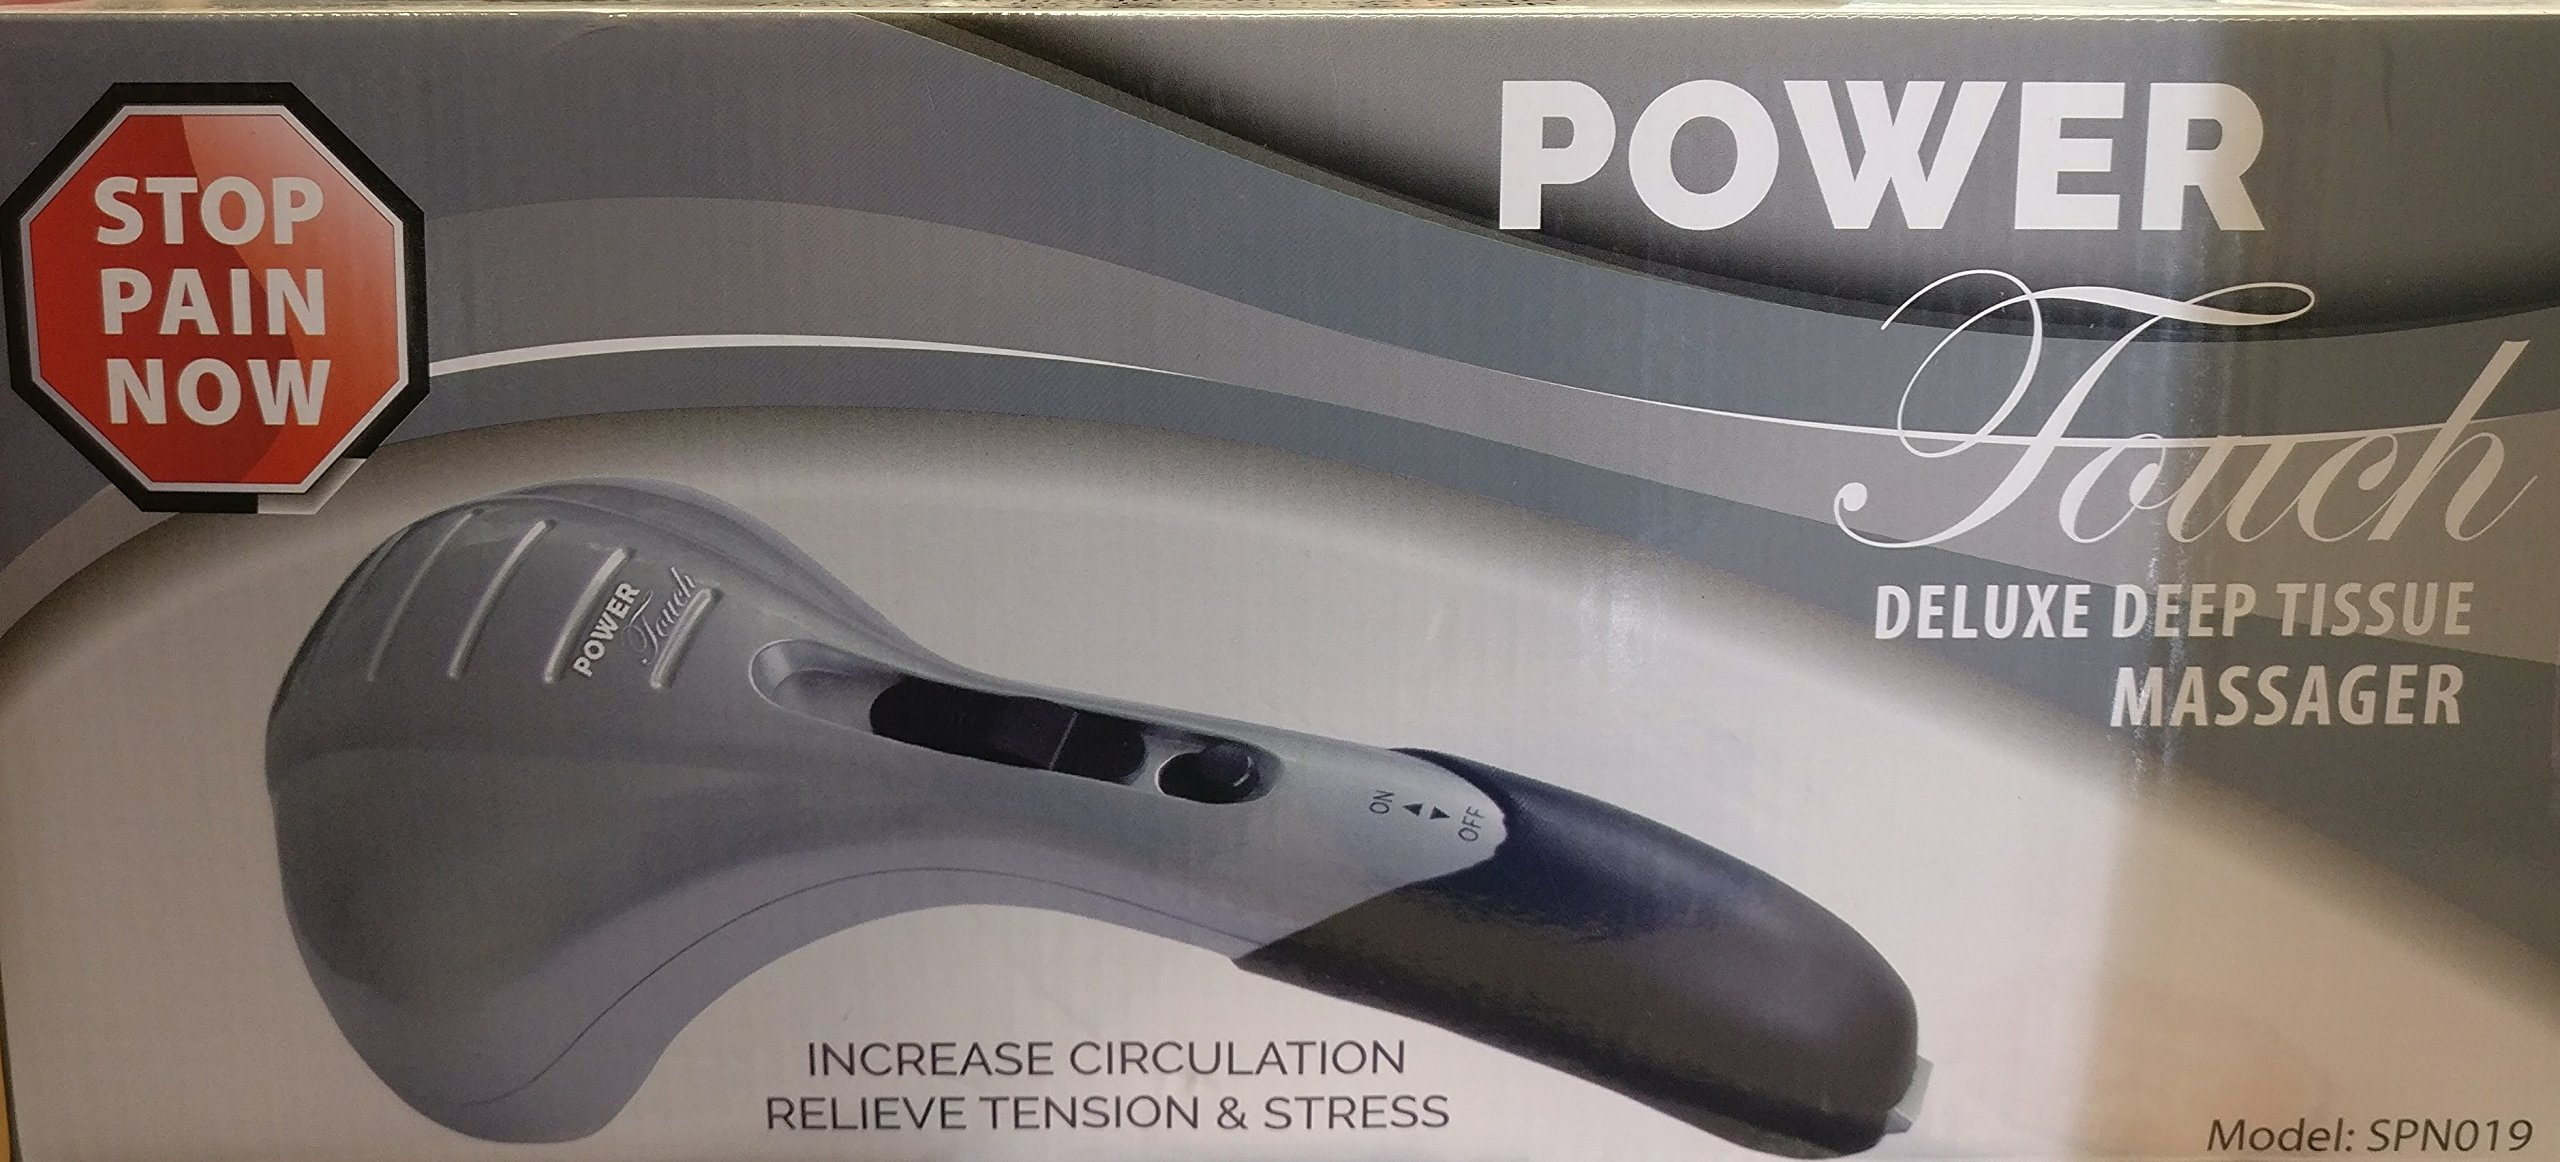 Power Touch Deluxe Deep Tissue Massager Silver by Power Touch